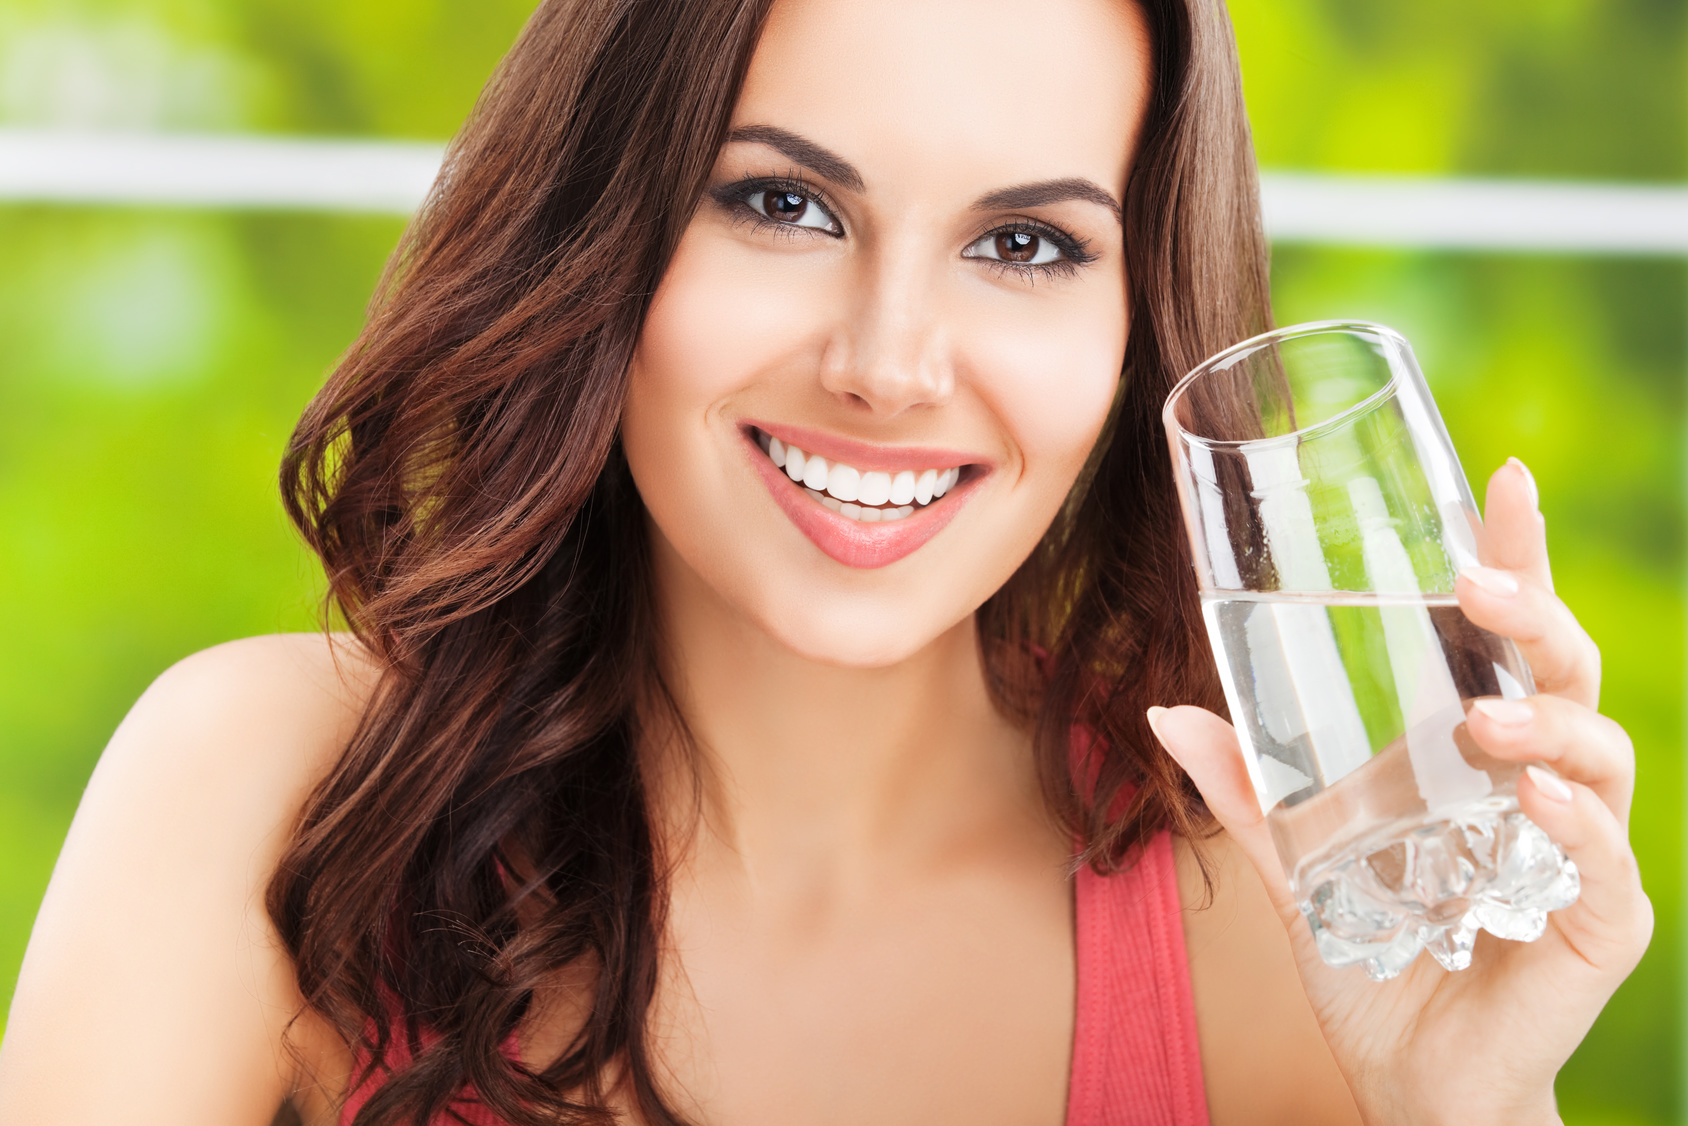 Healthy water and healthy skin go together.